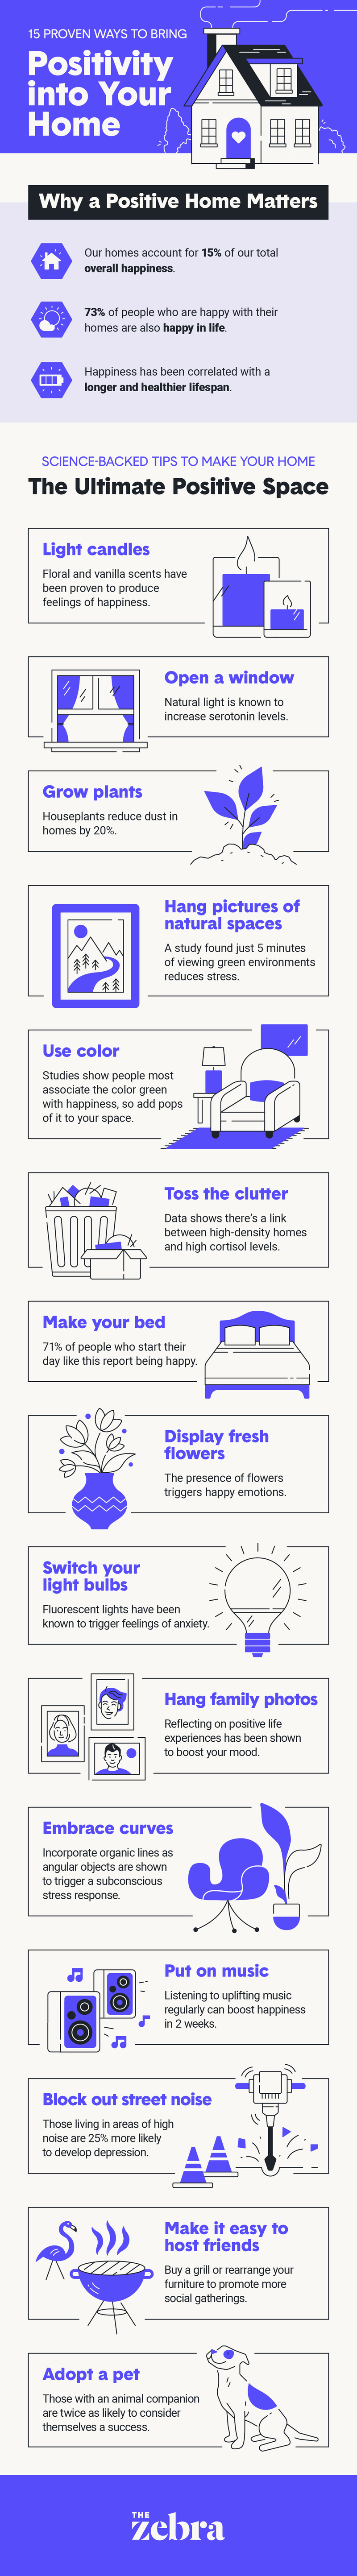 positive energy interior decor tips infographic